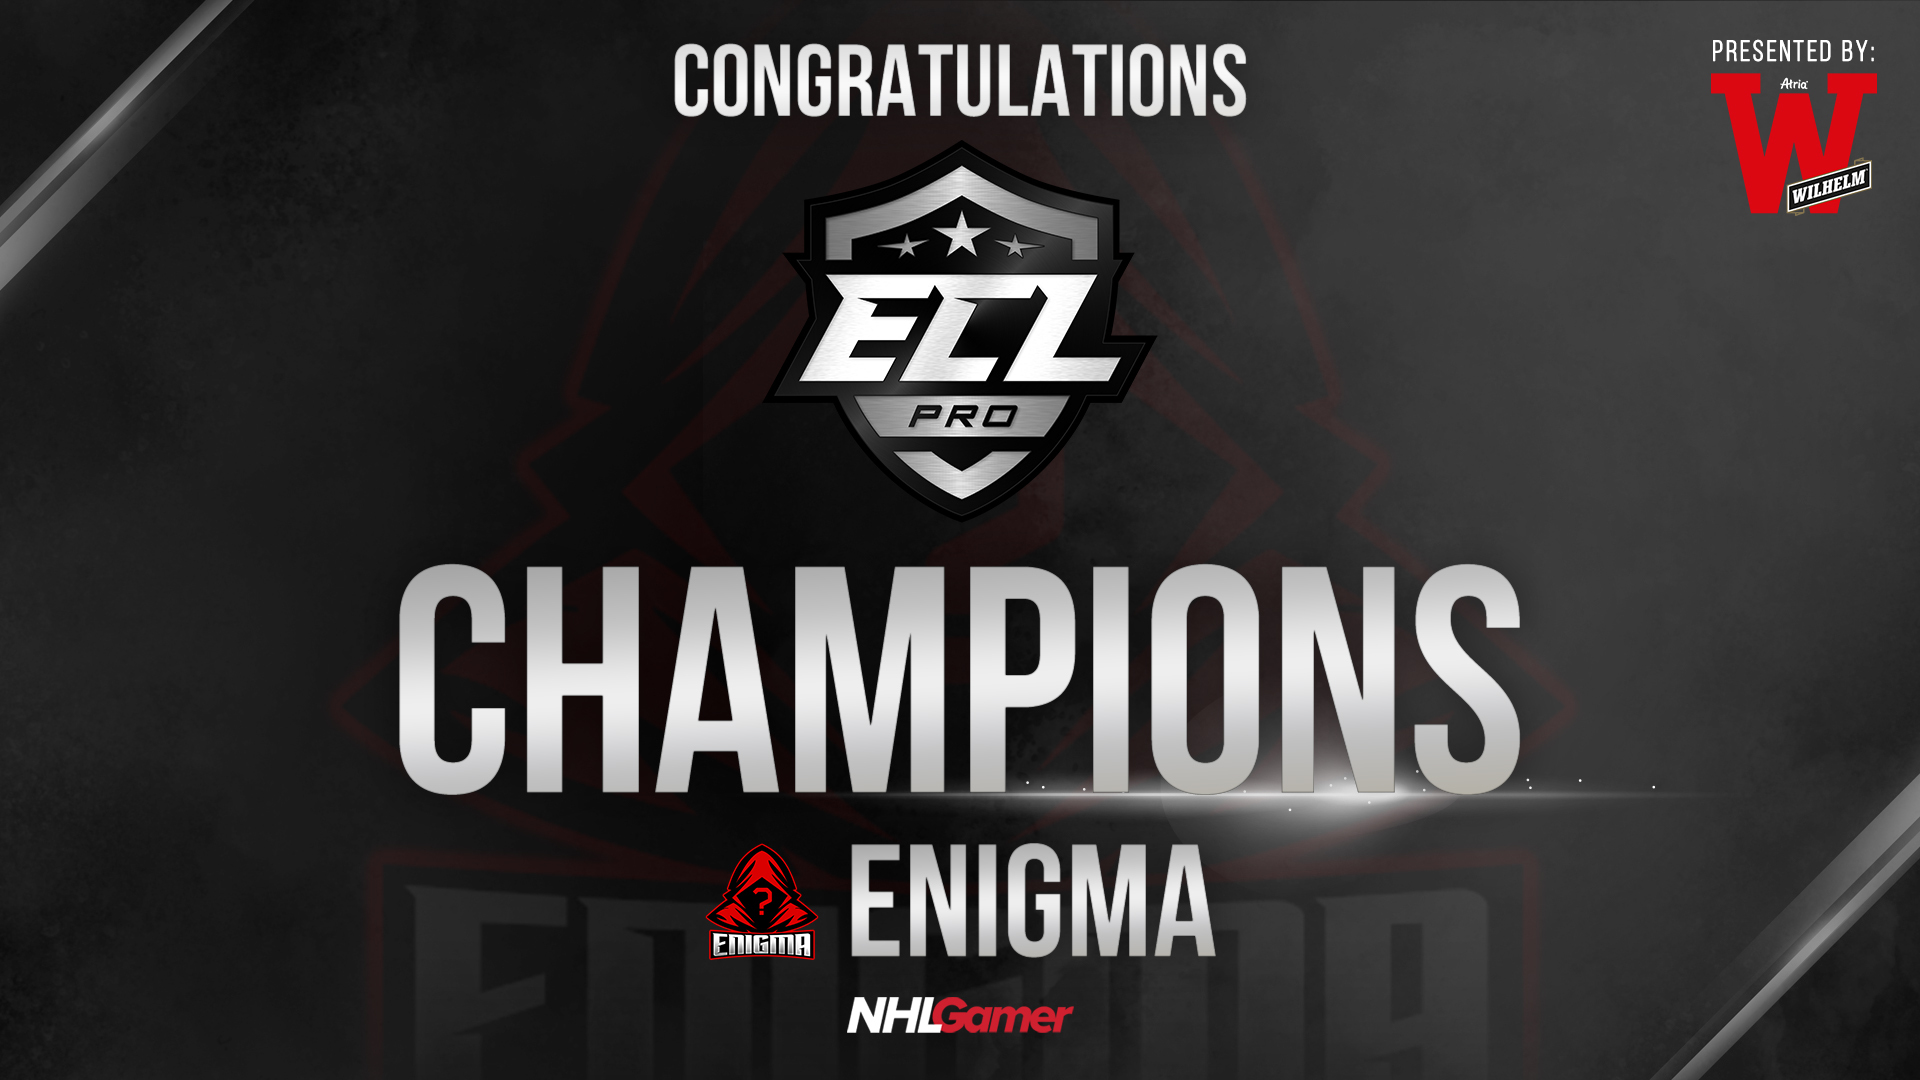 ECL_11_Pro_Champs_Enigma.jpg